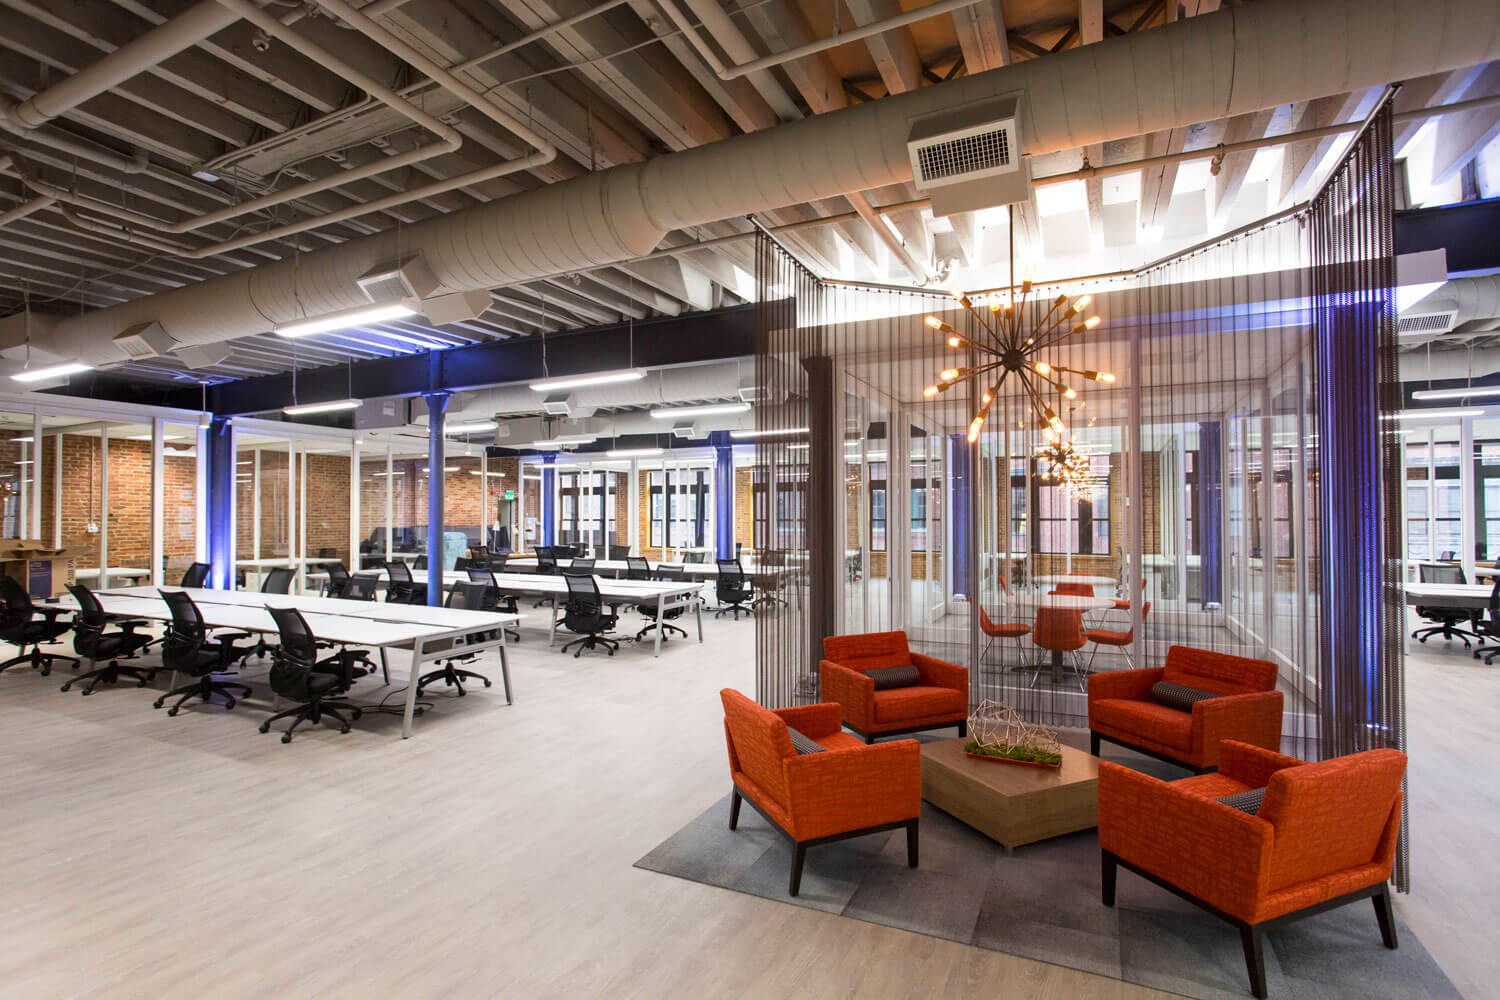 Spark KC will add coworking to the Two Light community. Source: Spark-Bmore.com